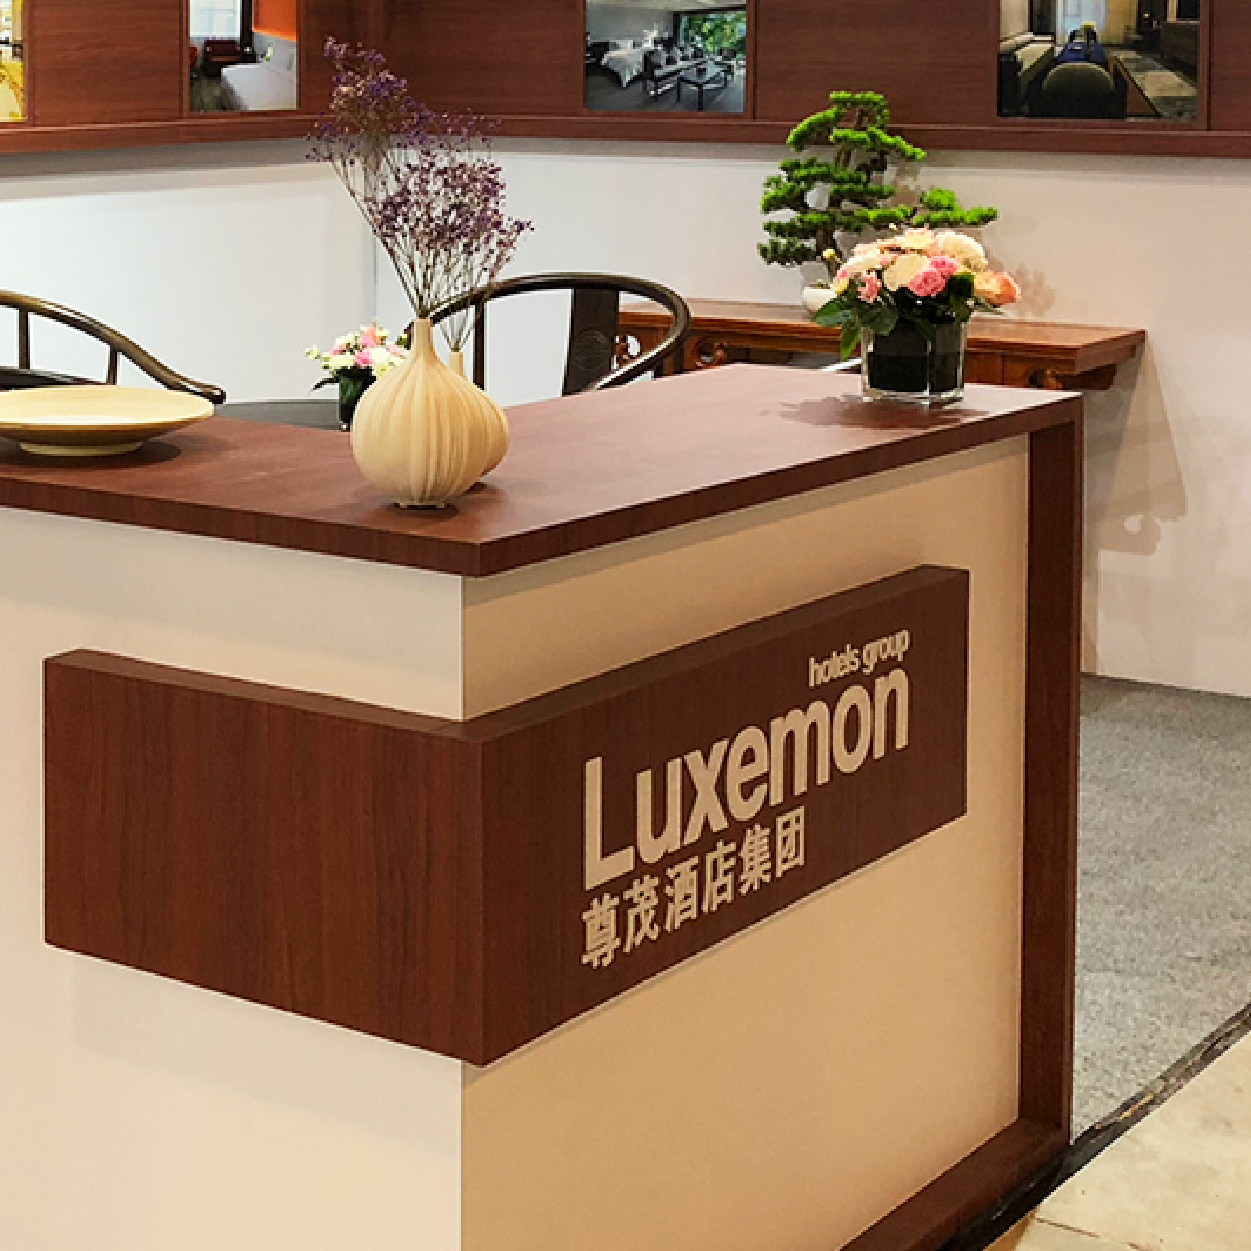 Luxemon Hotels Group